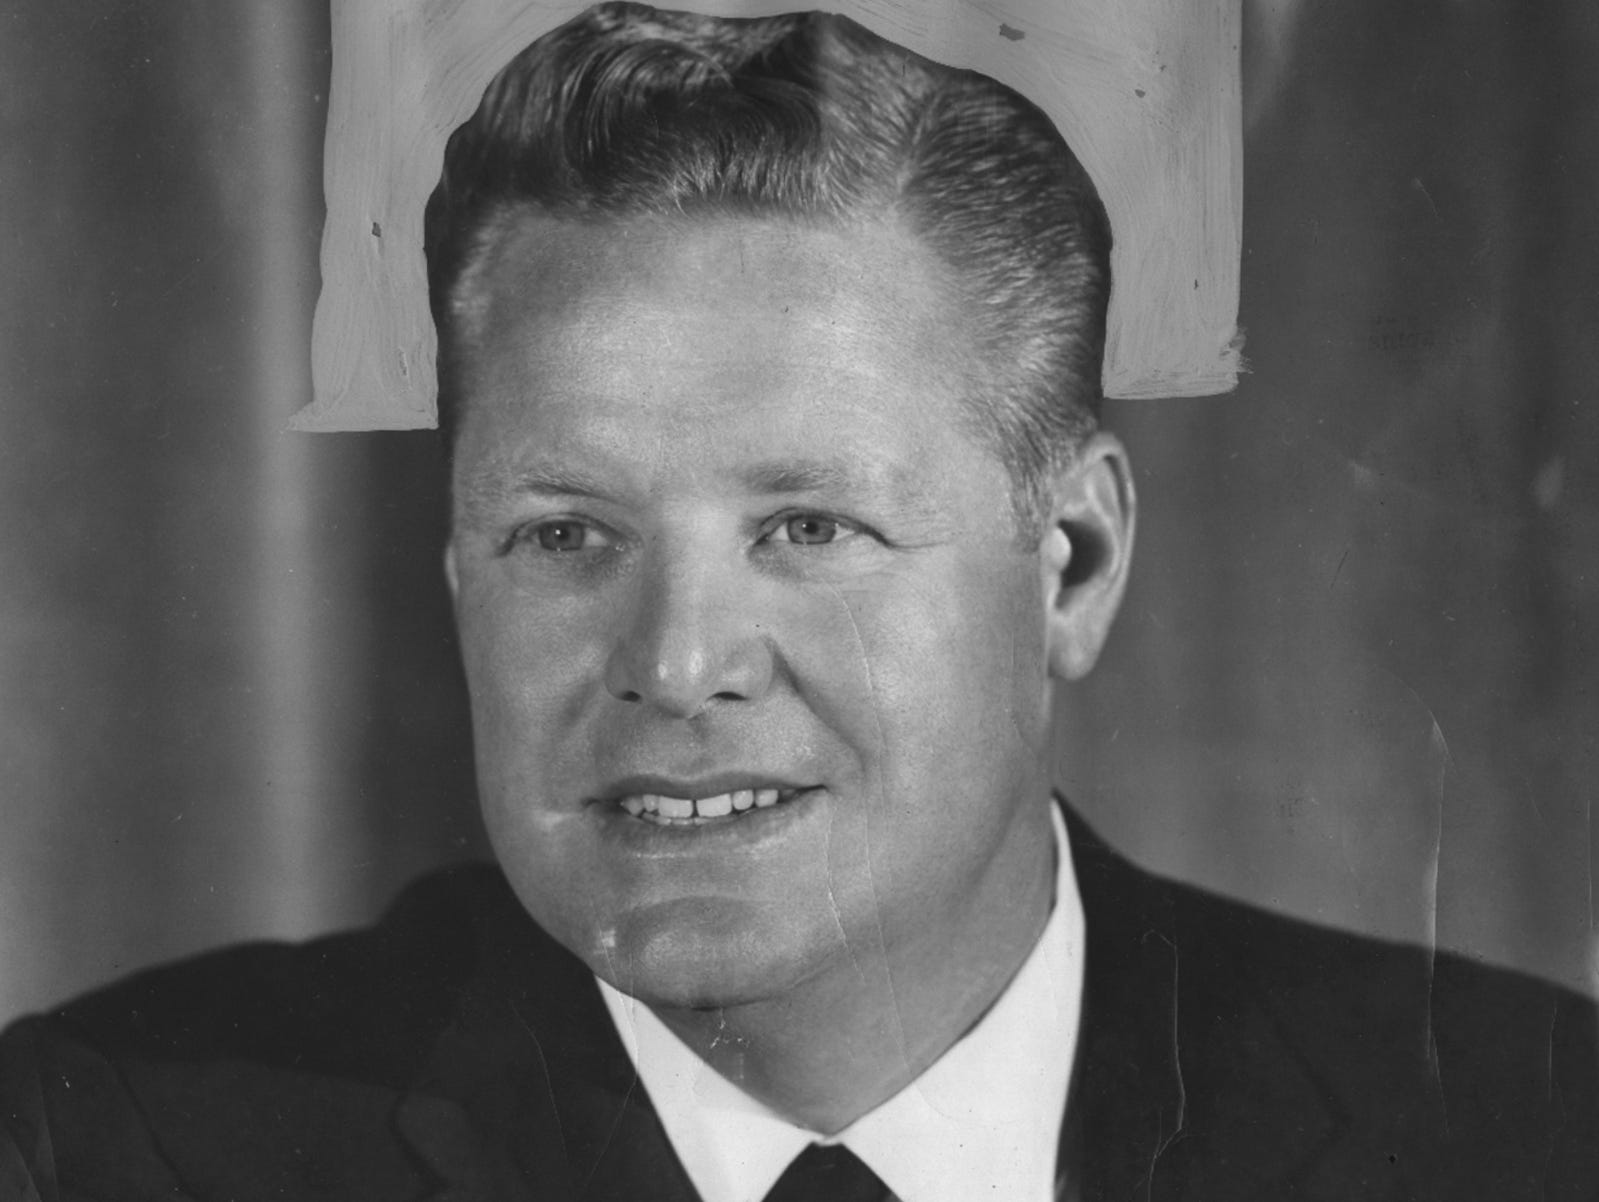 George Bryson was the broadcaster for the first regularly scheduled season of WLWT broadcasting he Reds' games.